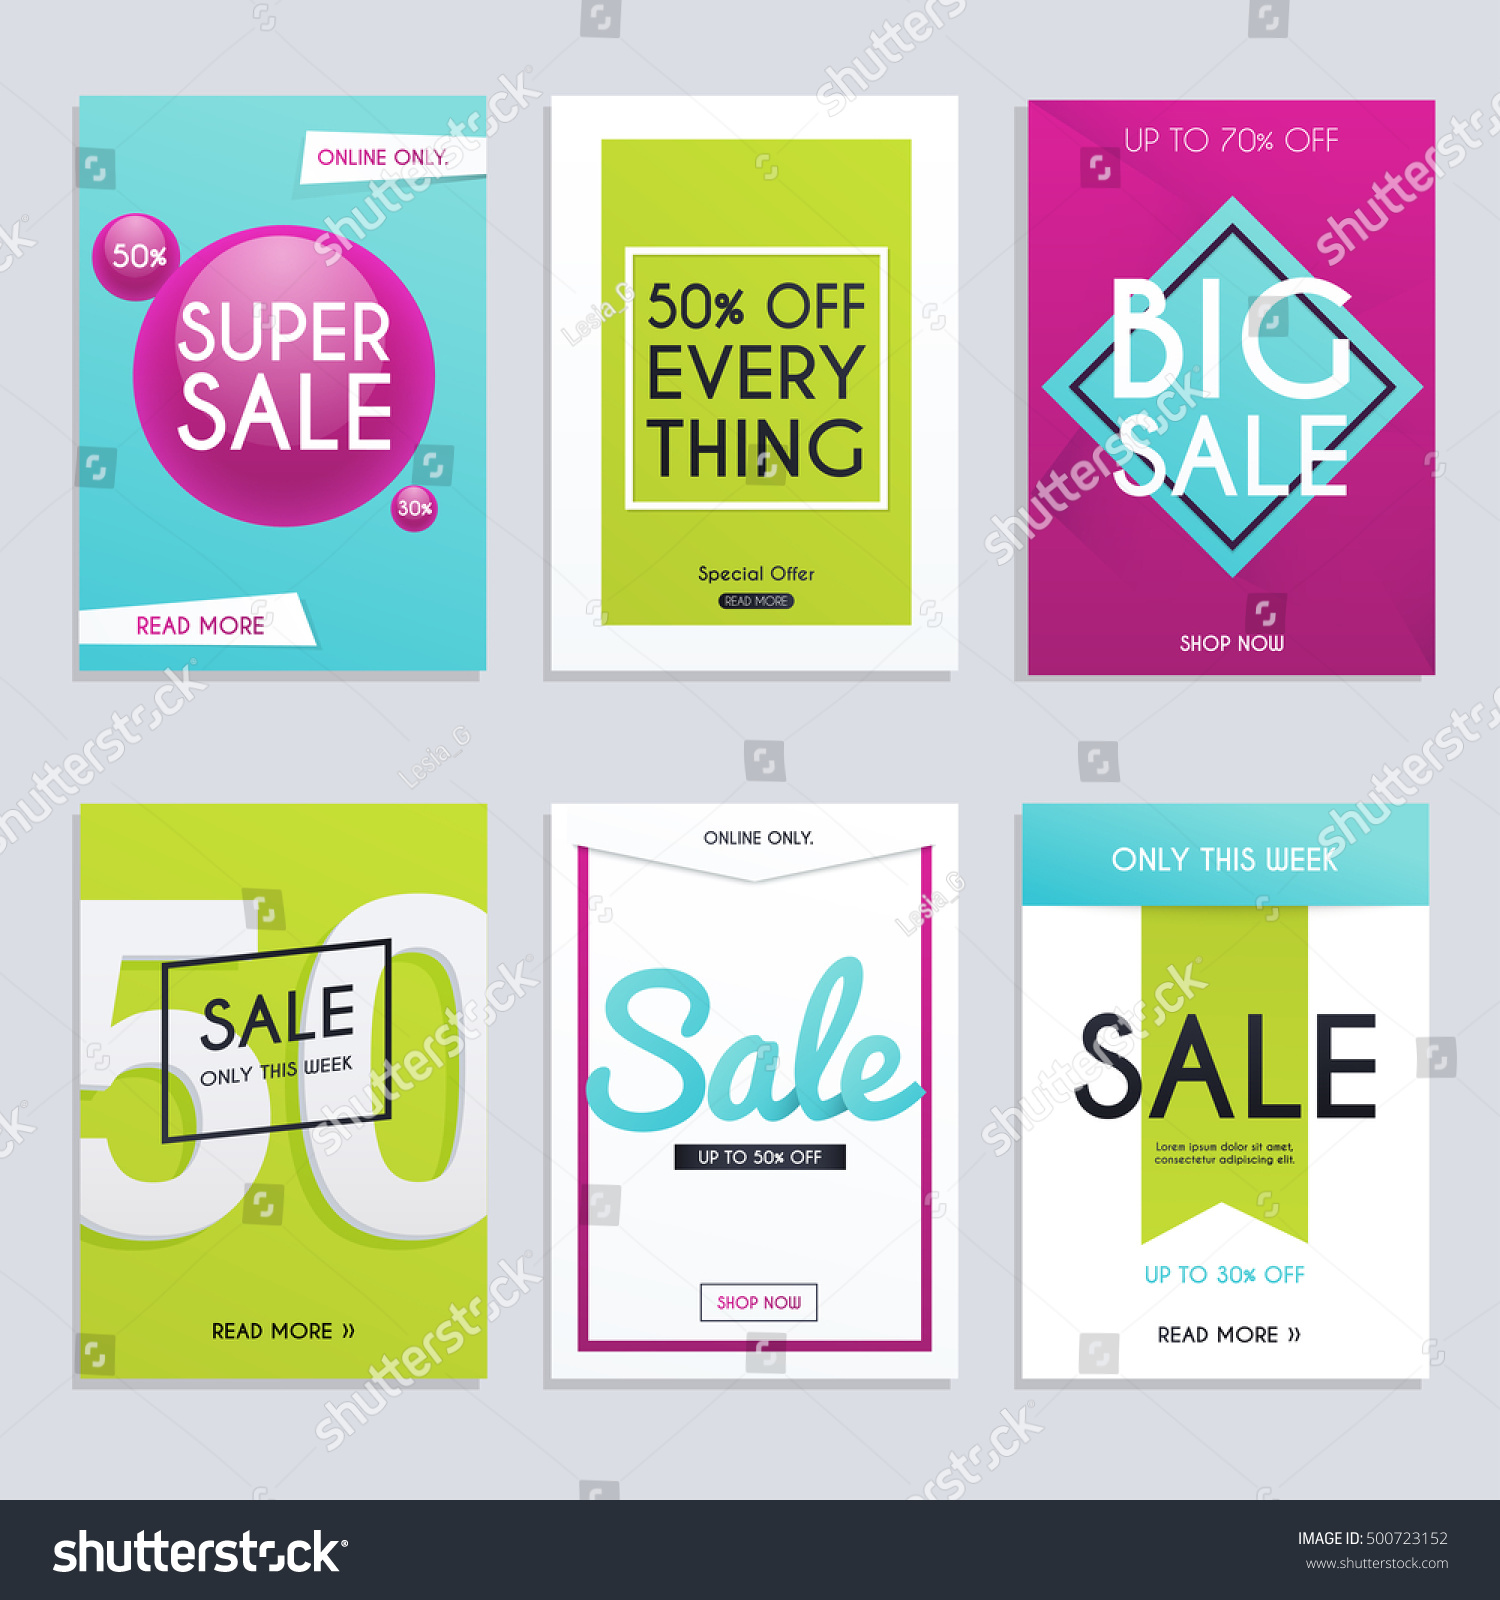 Set Media Banners Discount Offer Shopping Stock Vector. Healthcare Banners. Heading Banners. Graphic Design Letters. Ihbr Signs. Hoodie Stickers. French Laundry Signs. Infinity Signs Of Stroke. Burmese Zodiac Signs Of Stroke